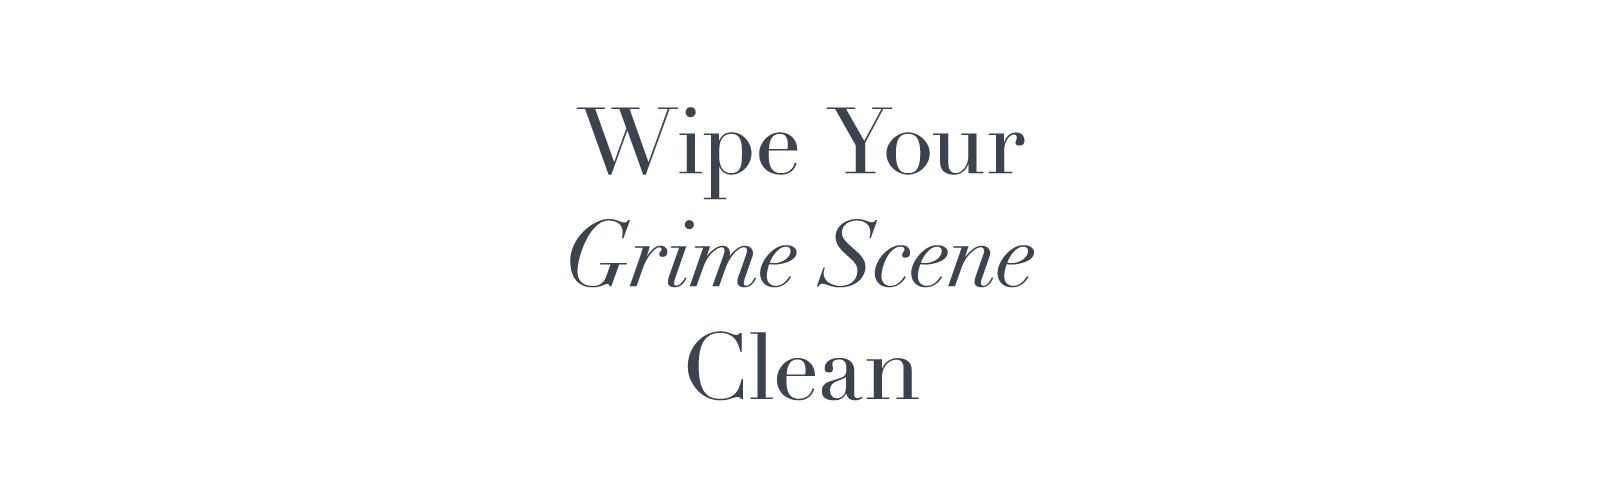 Wipe Your Grime Scene Clean